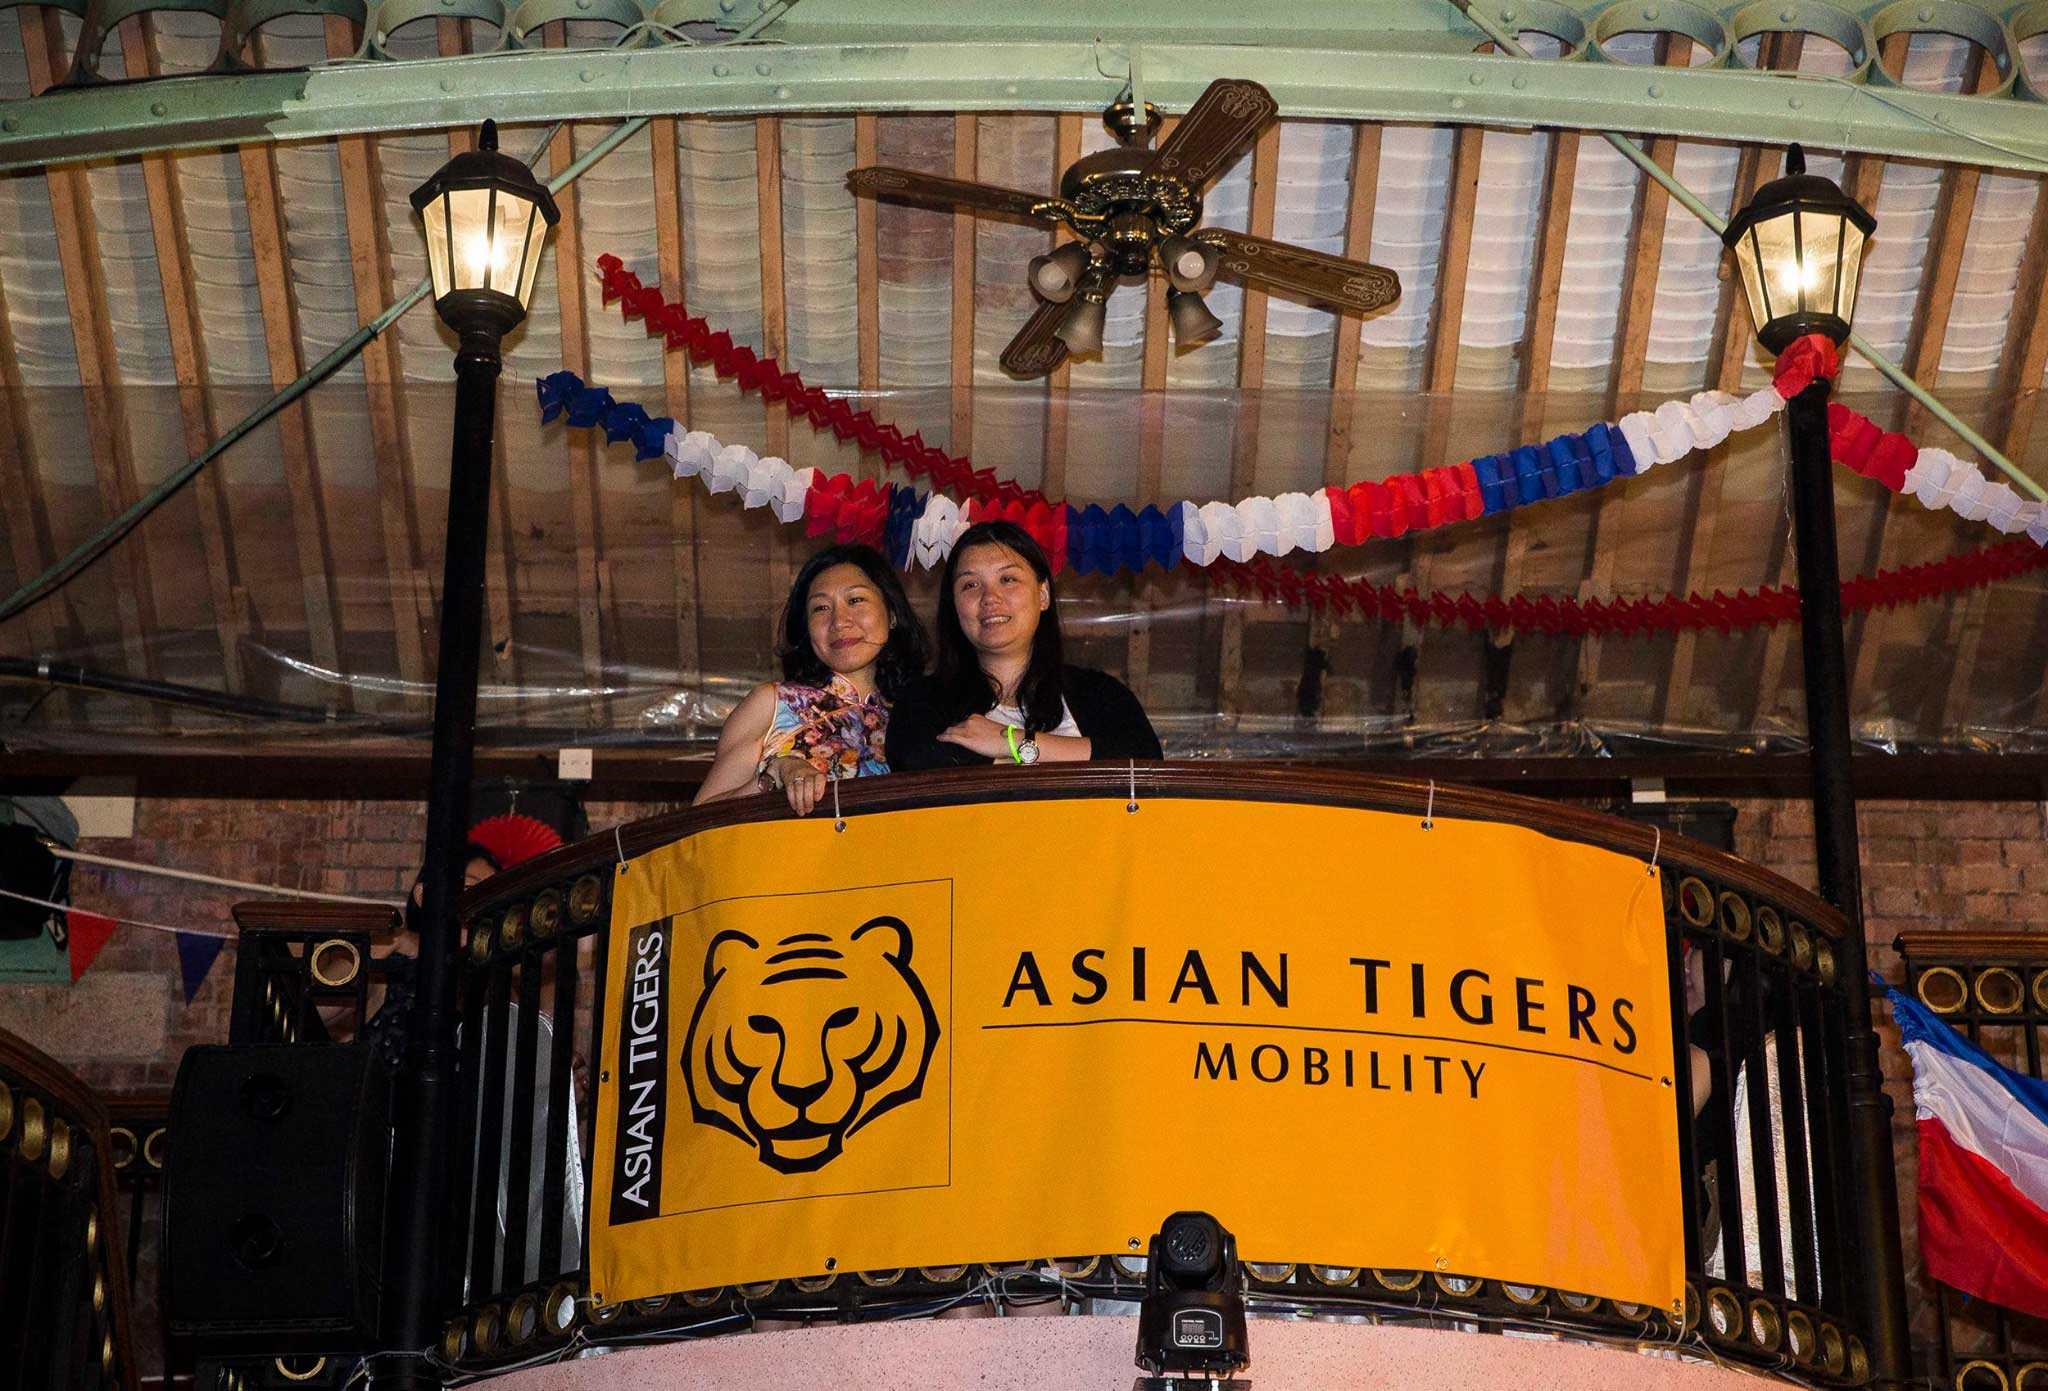 Asian Tigers joined FCCIHK for French National Day Party